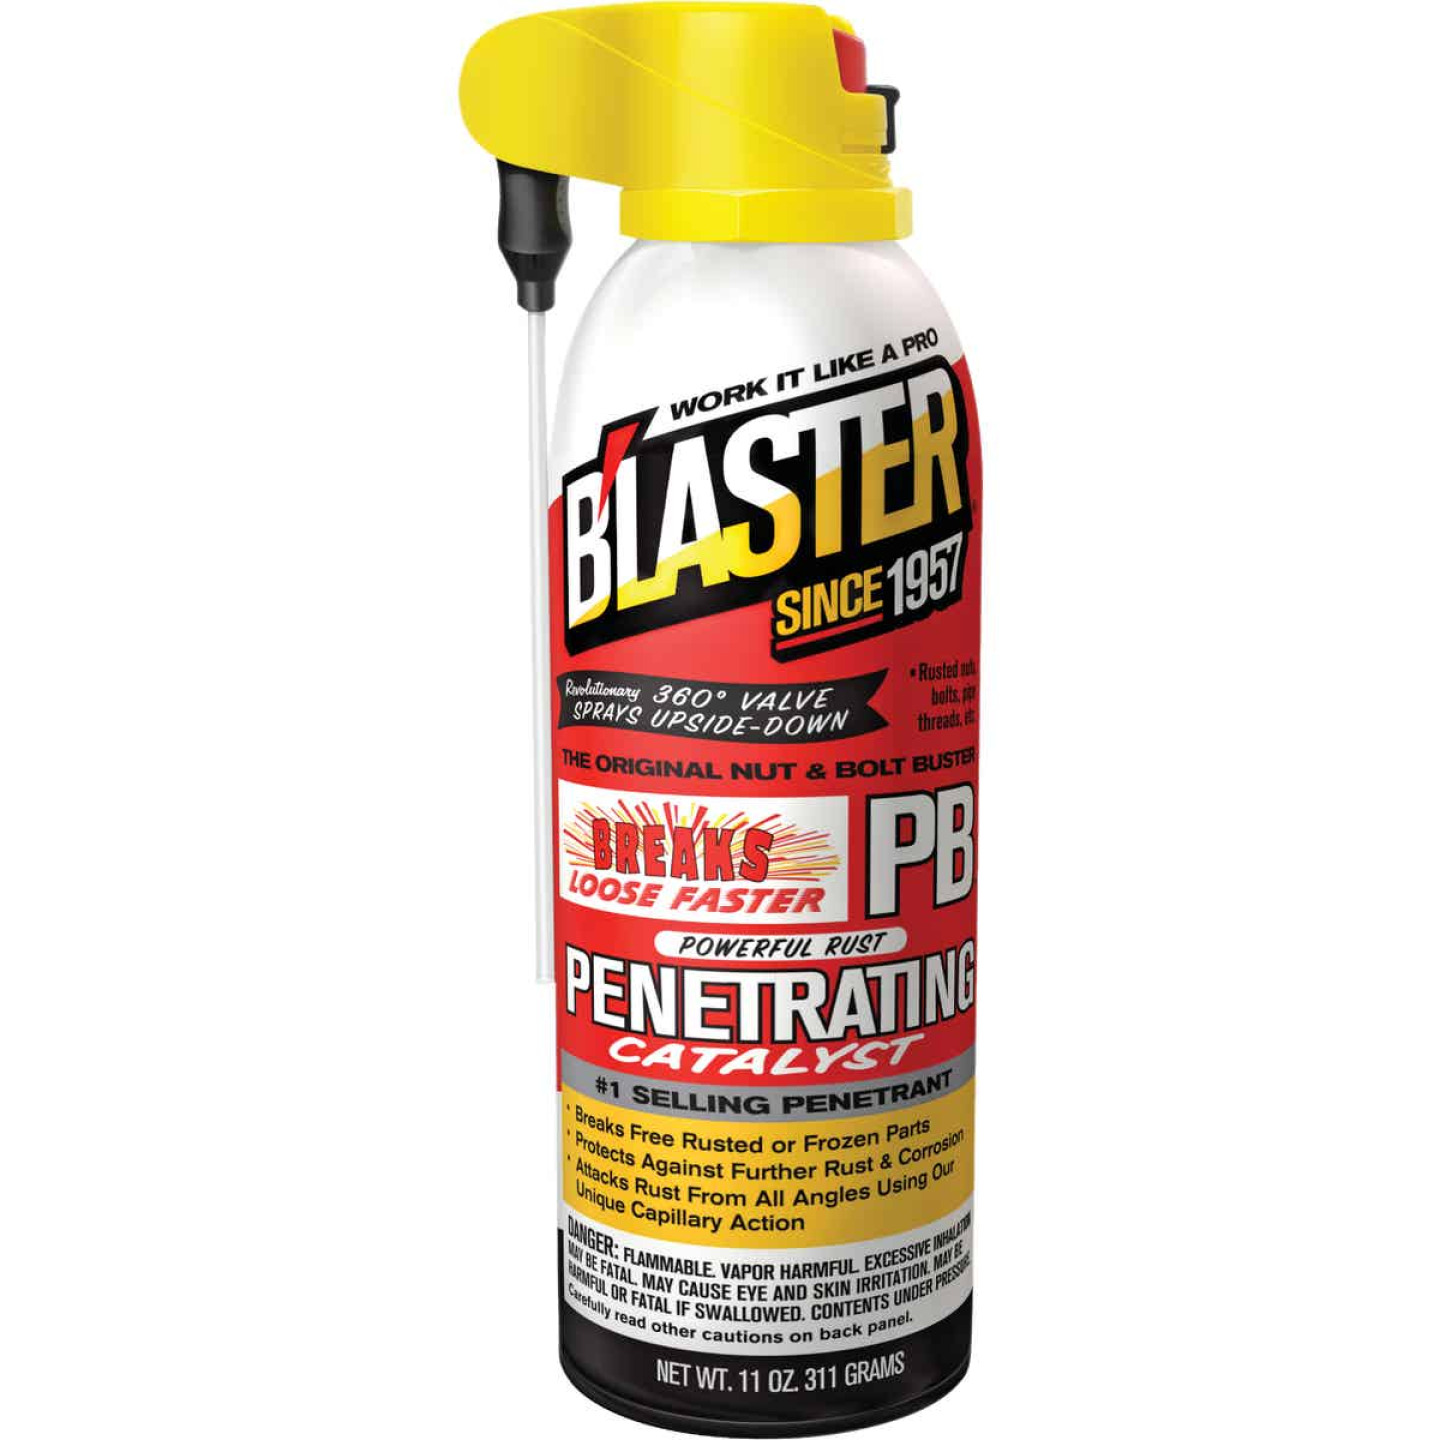 Blaster 11 Oz. Aerosol PB Penetrating Catalyst Penetrant with ProStraw Delivery System Image 1